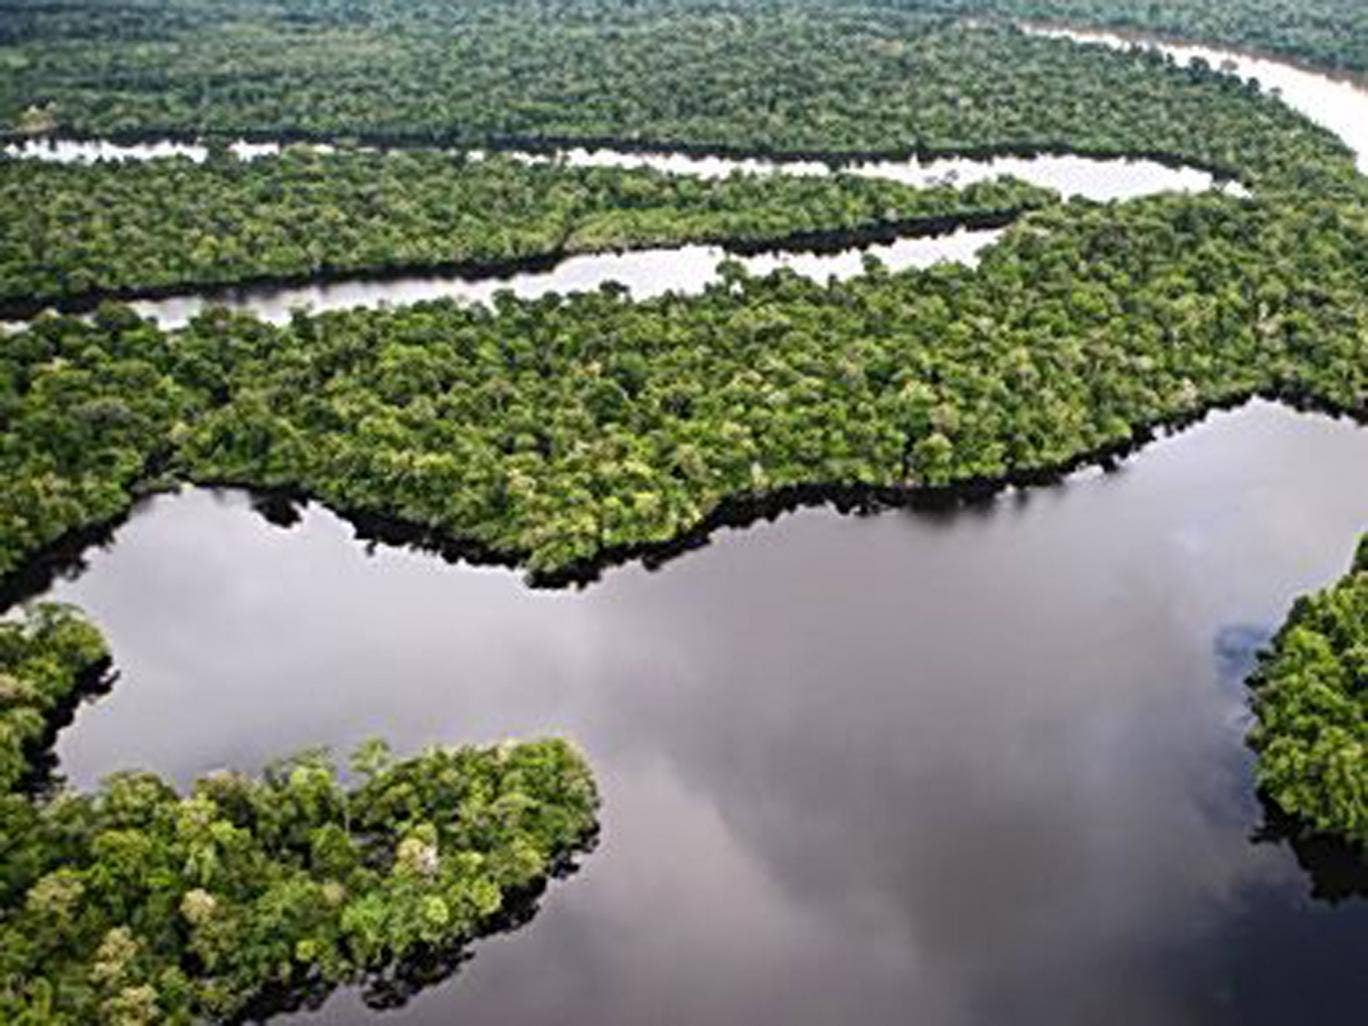 The Amazon's eco-systems have been damaged